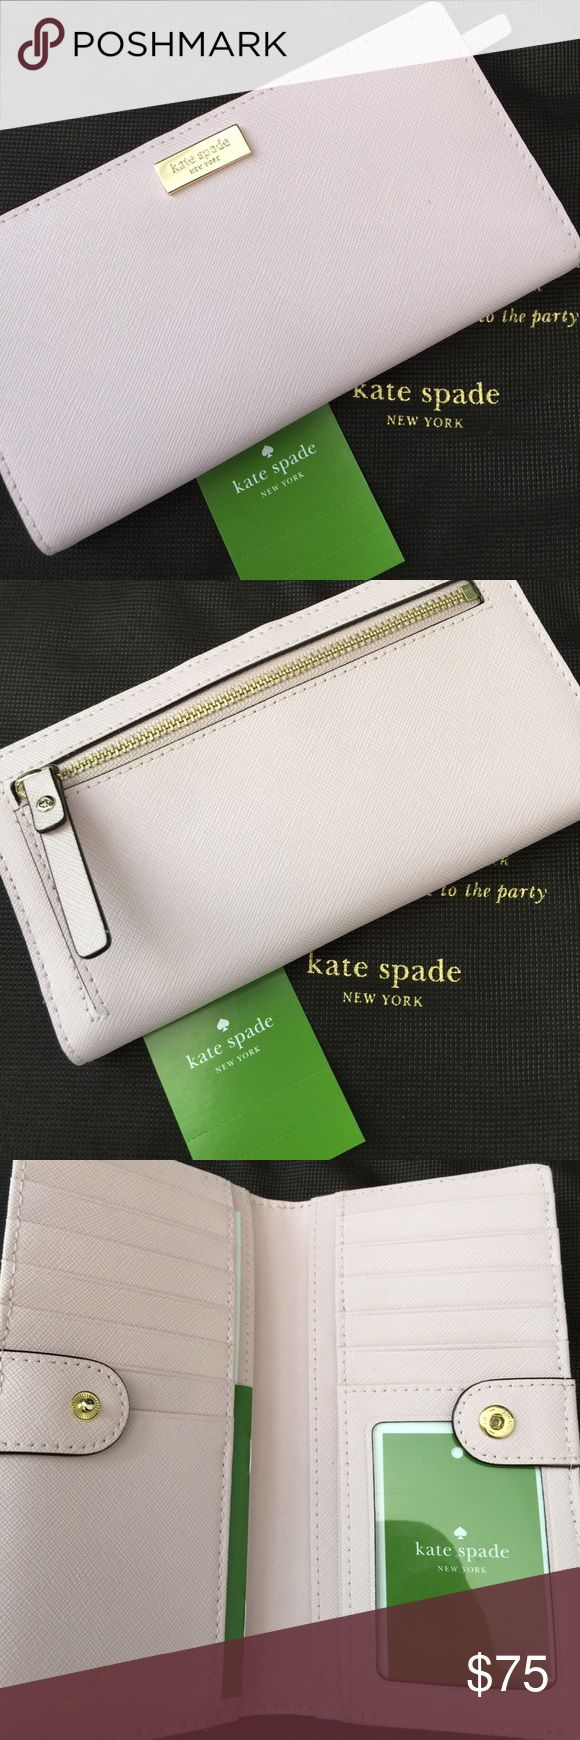 💯% Authentic New Kate Spade Stacy Wallet 💯% Authentic New Kate Spade Stacy Wallet. Style# WRLU1601 Newbury Lane in Posypink. Never used. No stains/marks. Also available through P ay pa l. kate spade Bags Wallets